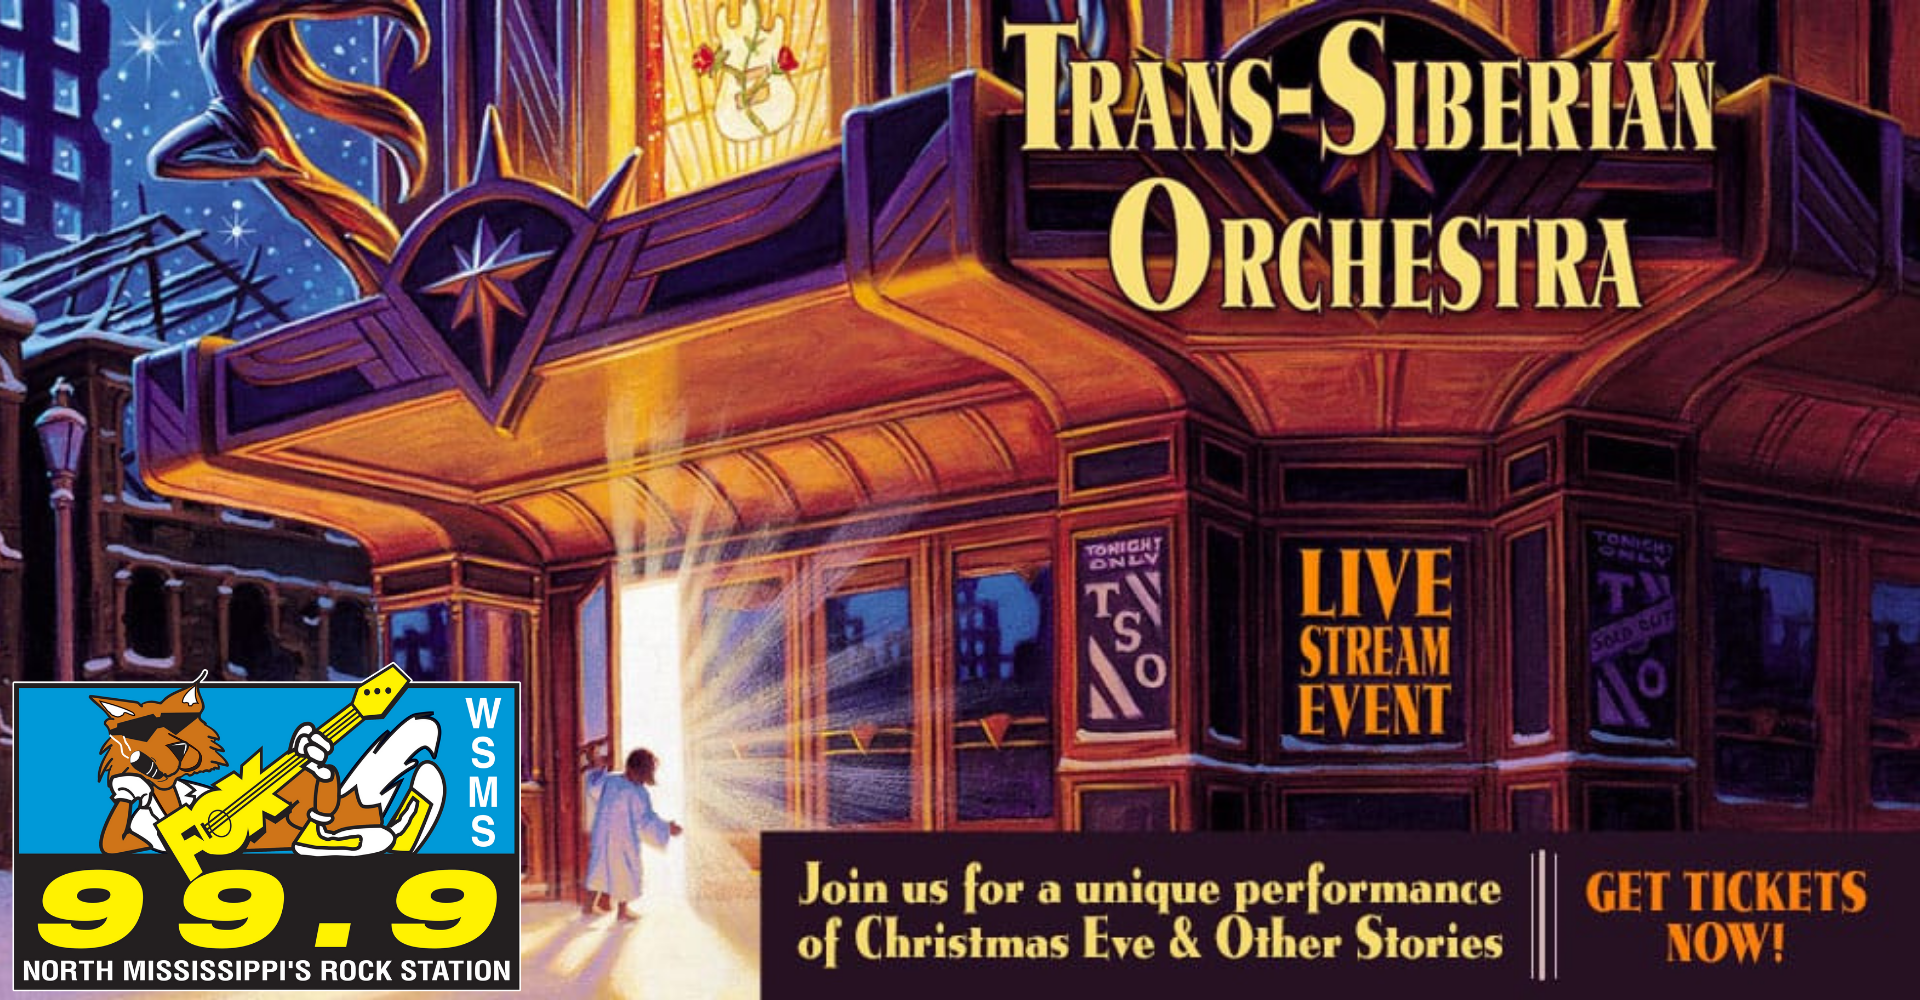 TXT to WIN-Trans-Siberian Orchestra